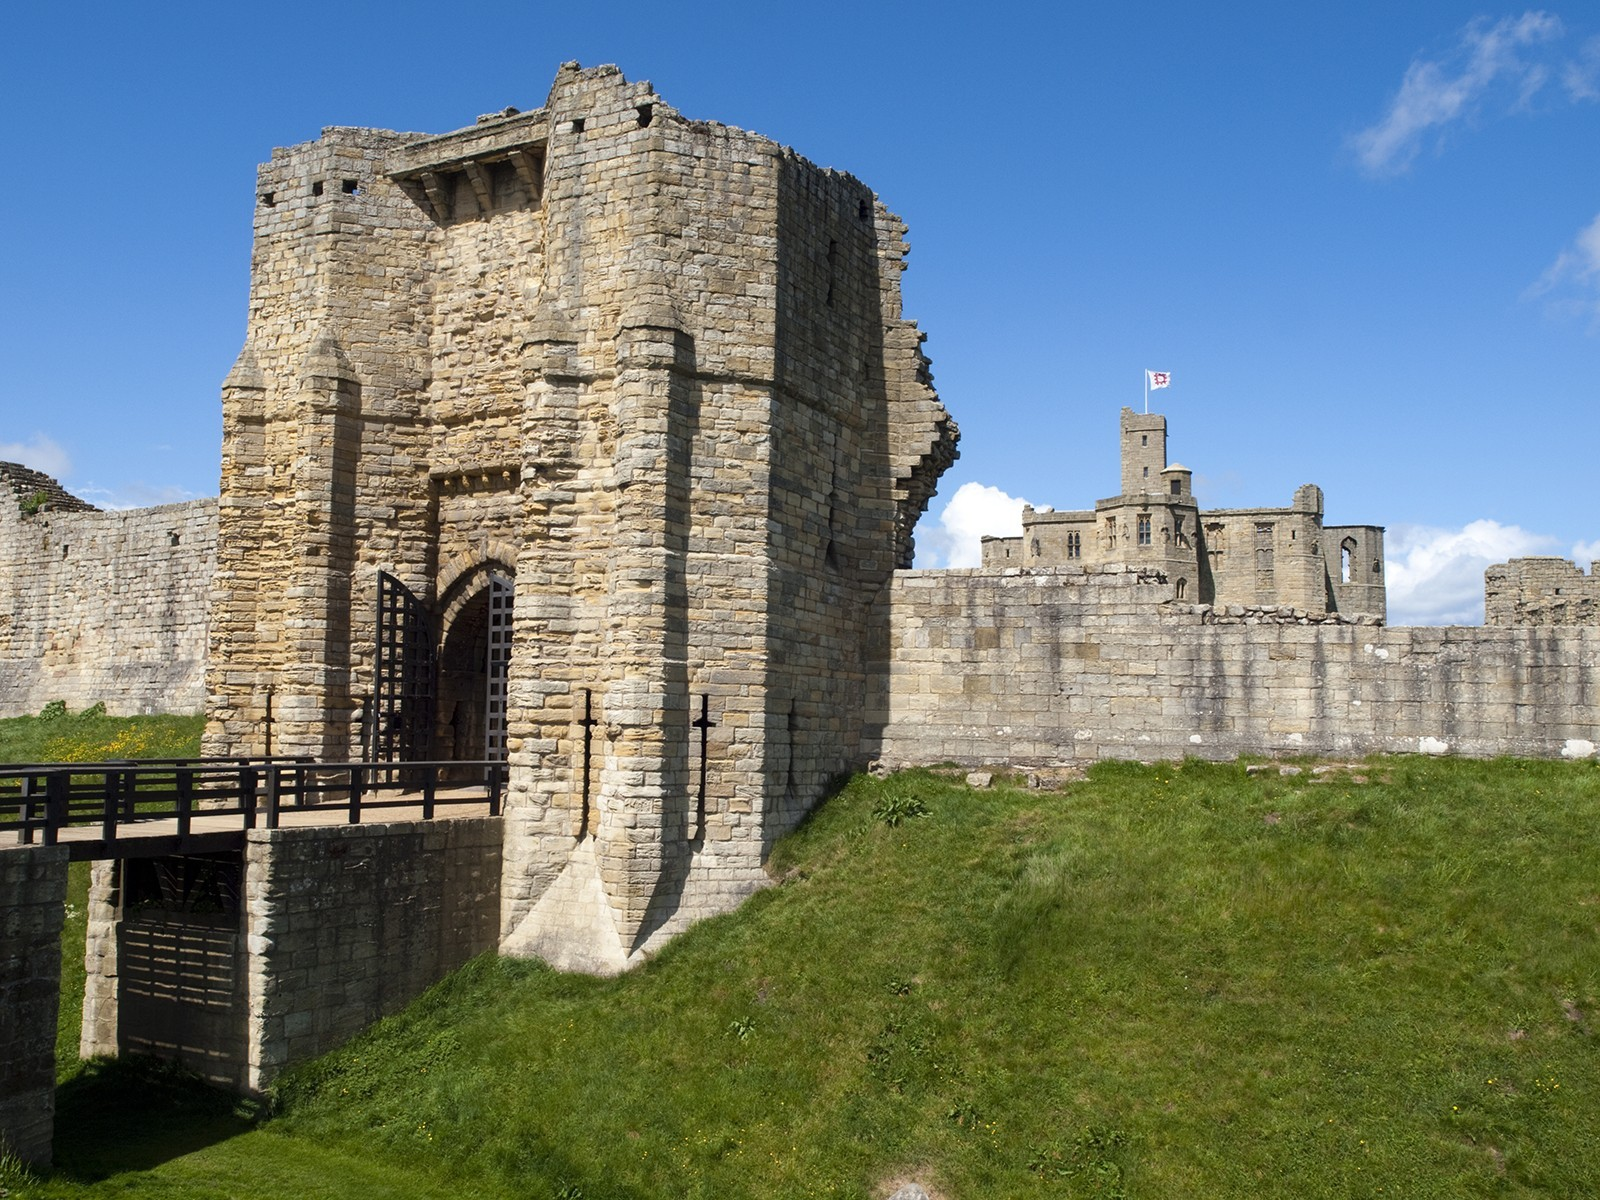 An old castle with a drawbridge on a green hillside with a blue sky